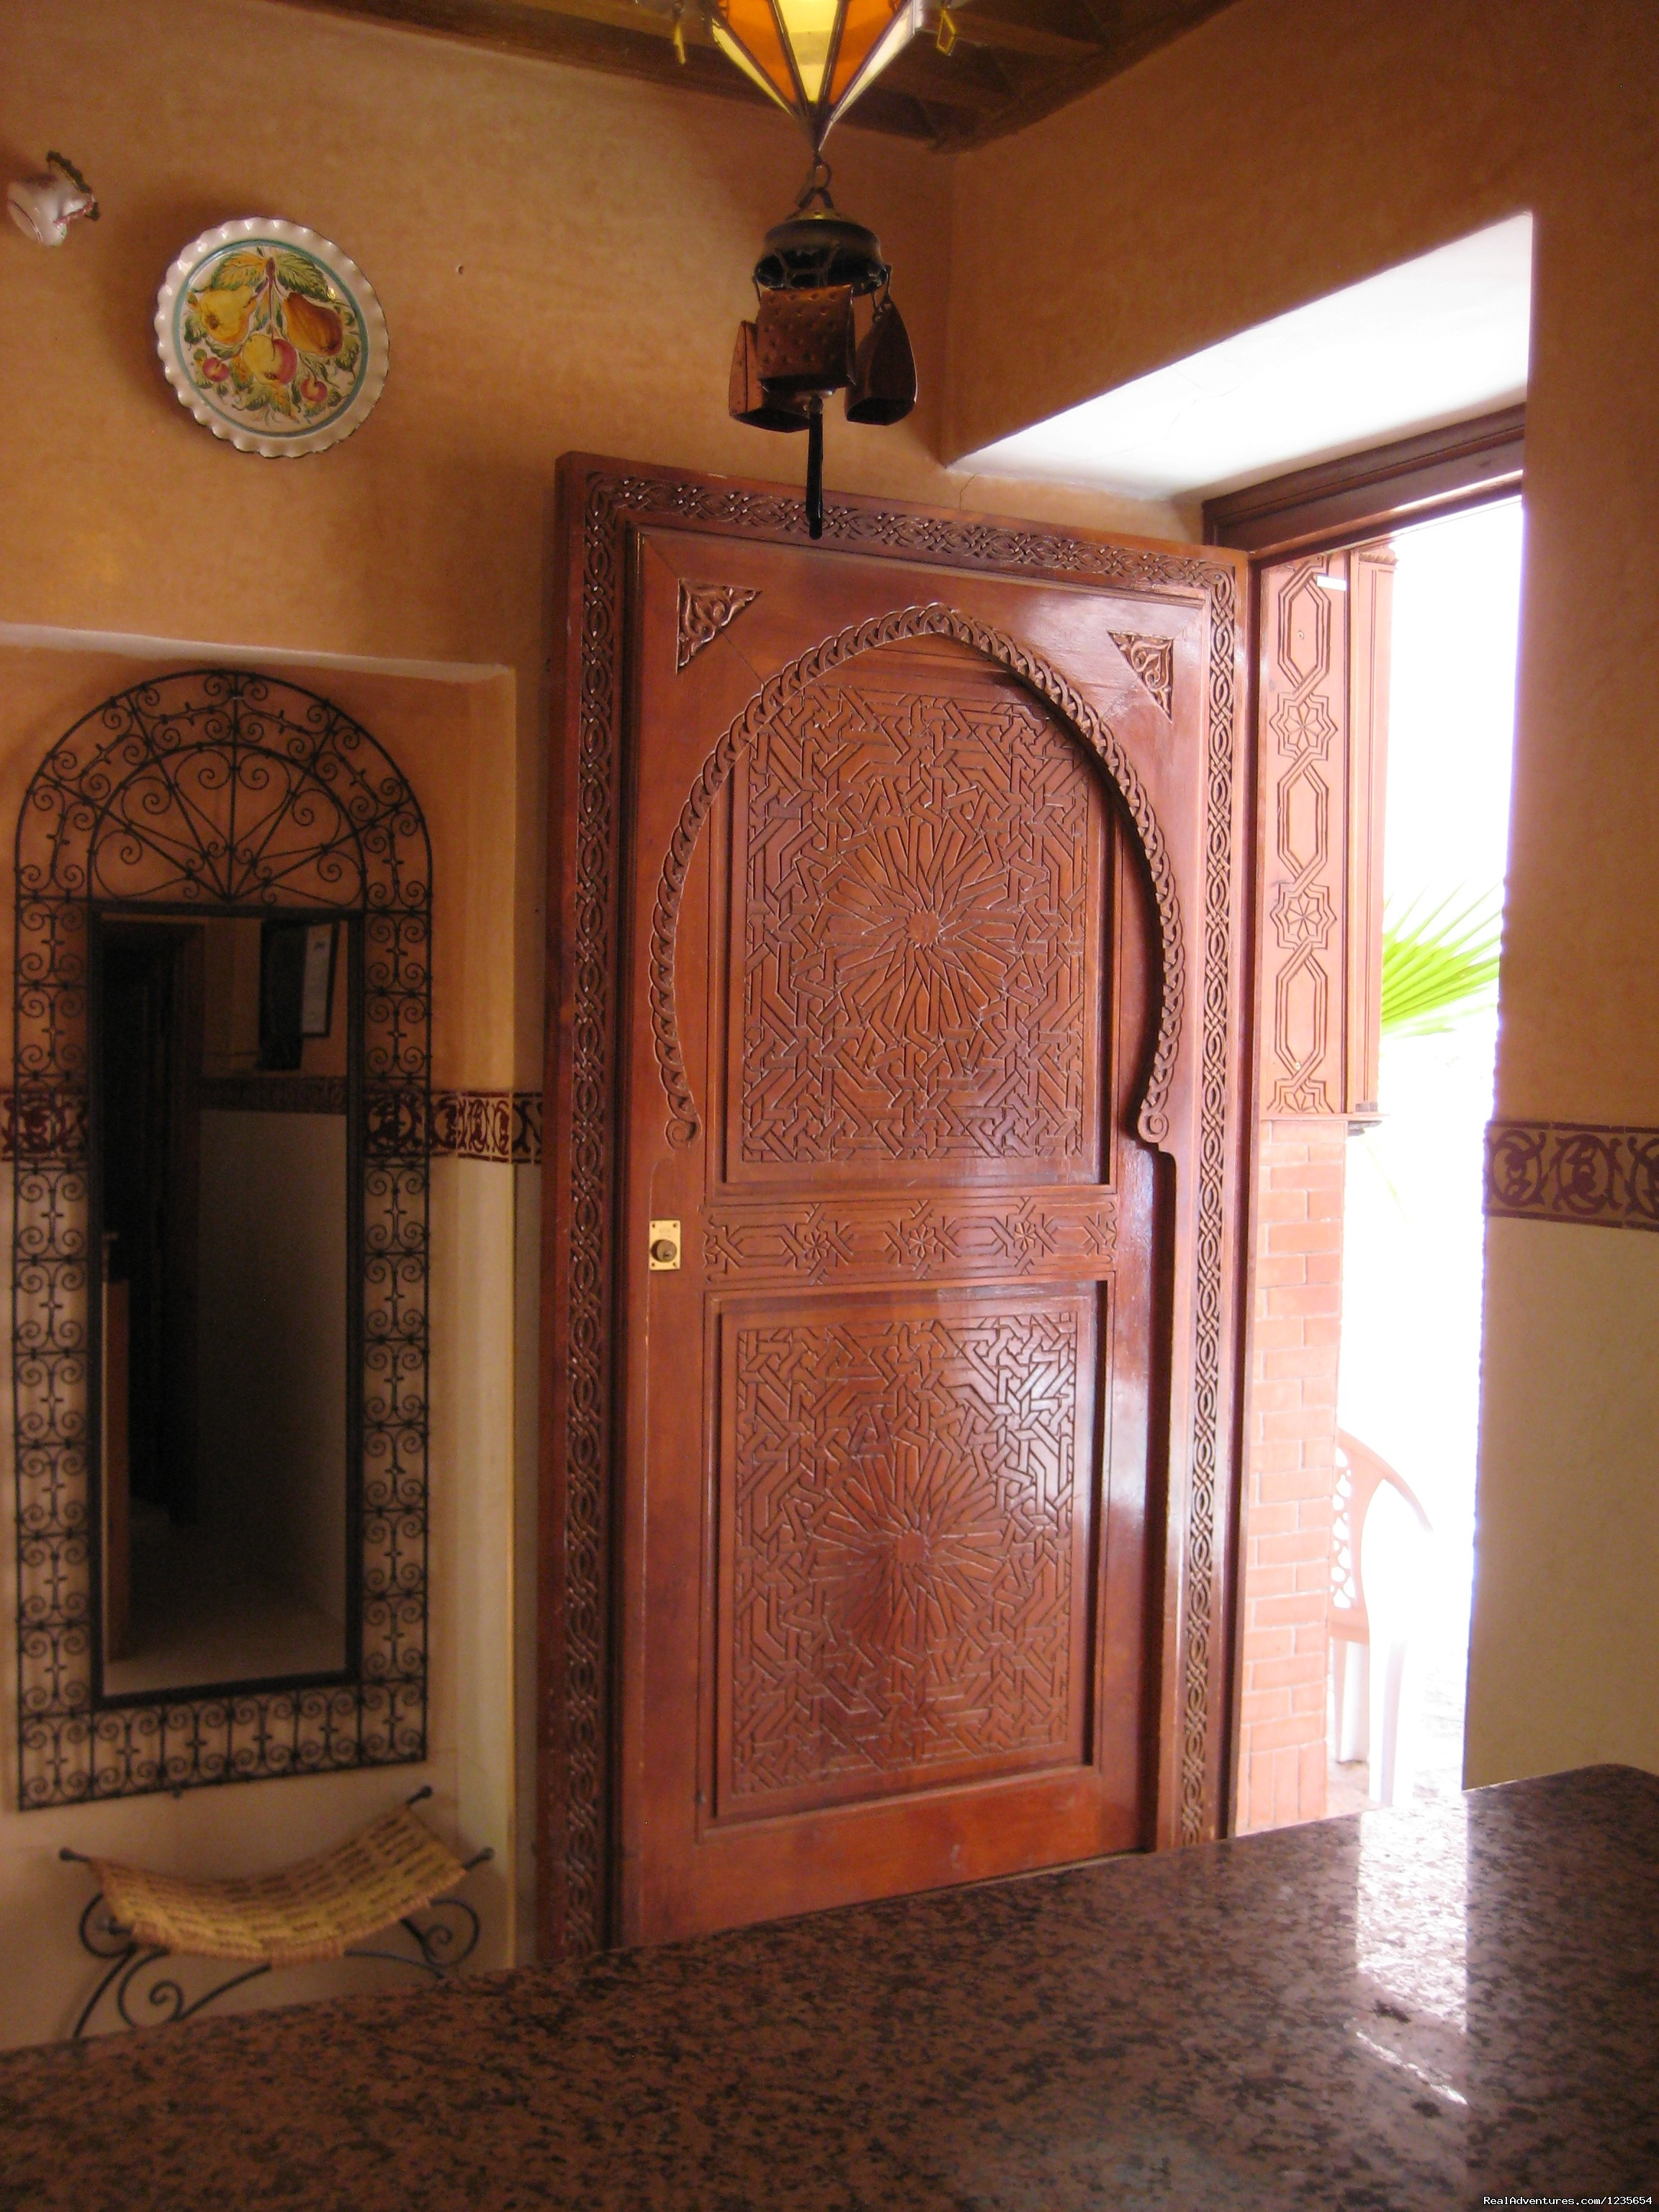 The entry with its beautiful door